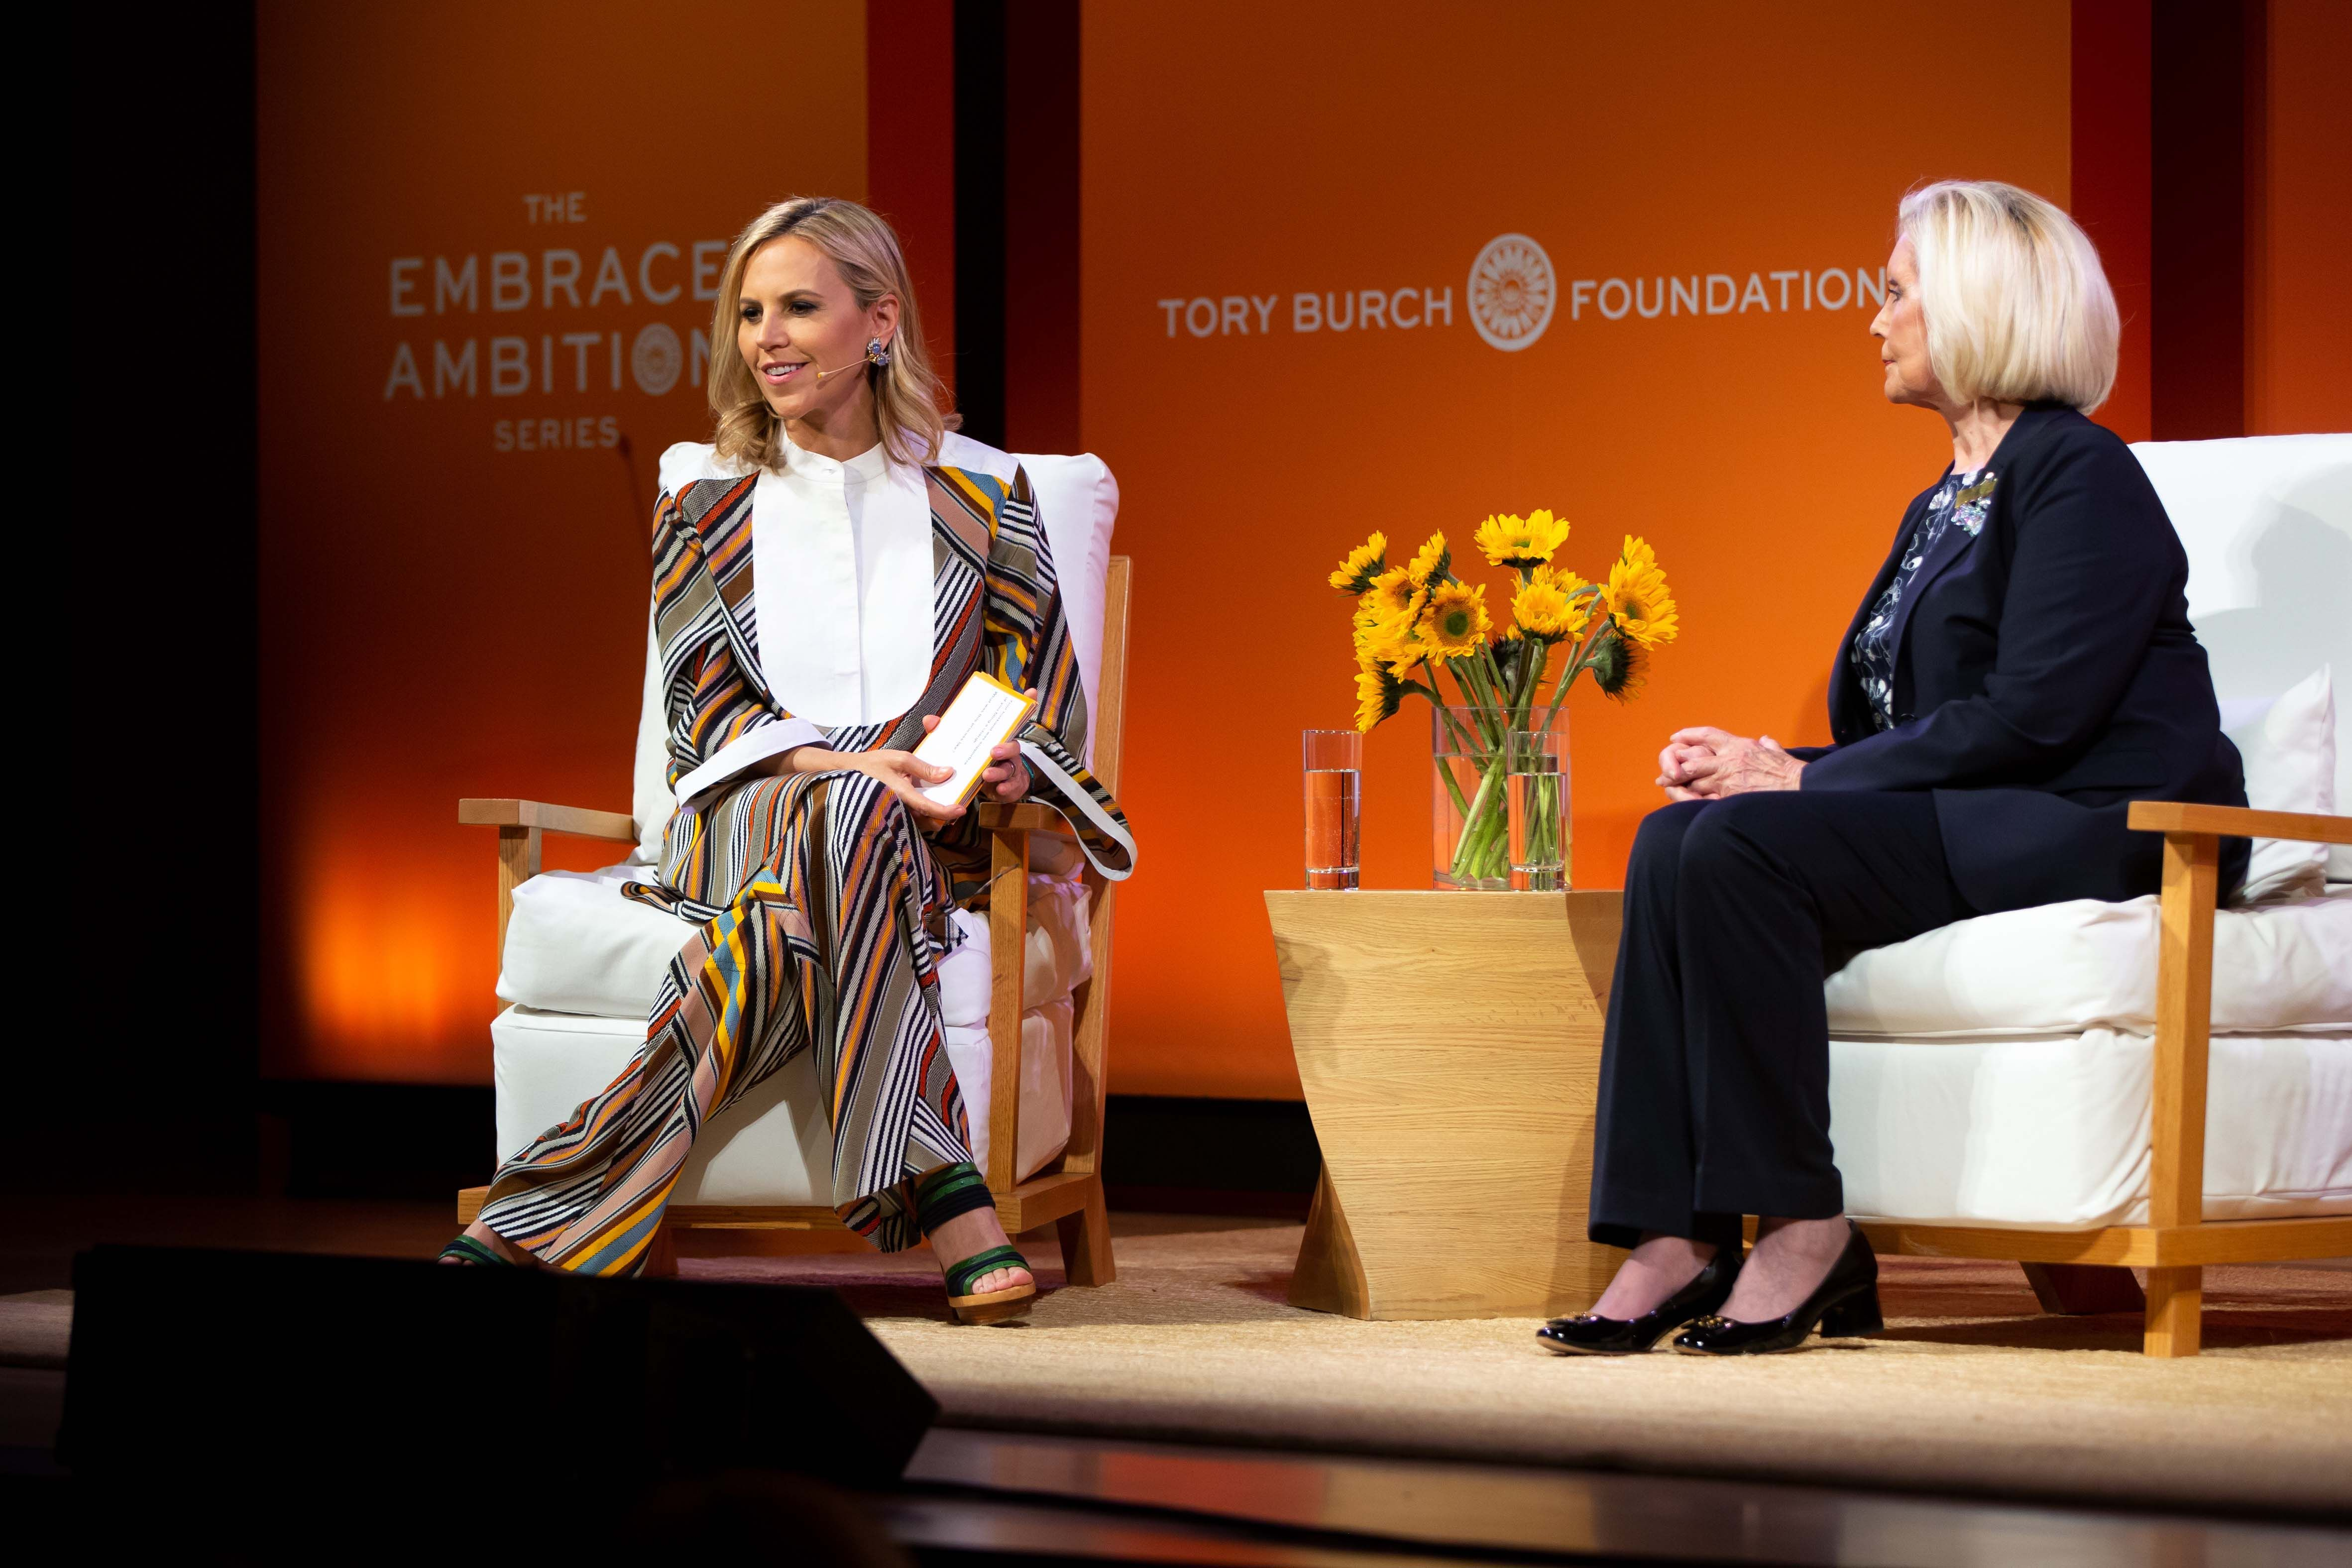 f9f108b87f79 See All the Photos of the Tory Burch Embrace Ambition Summit 2019